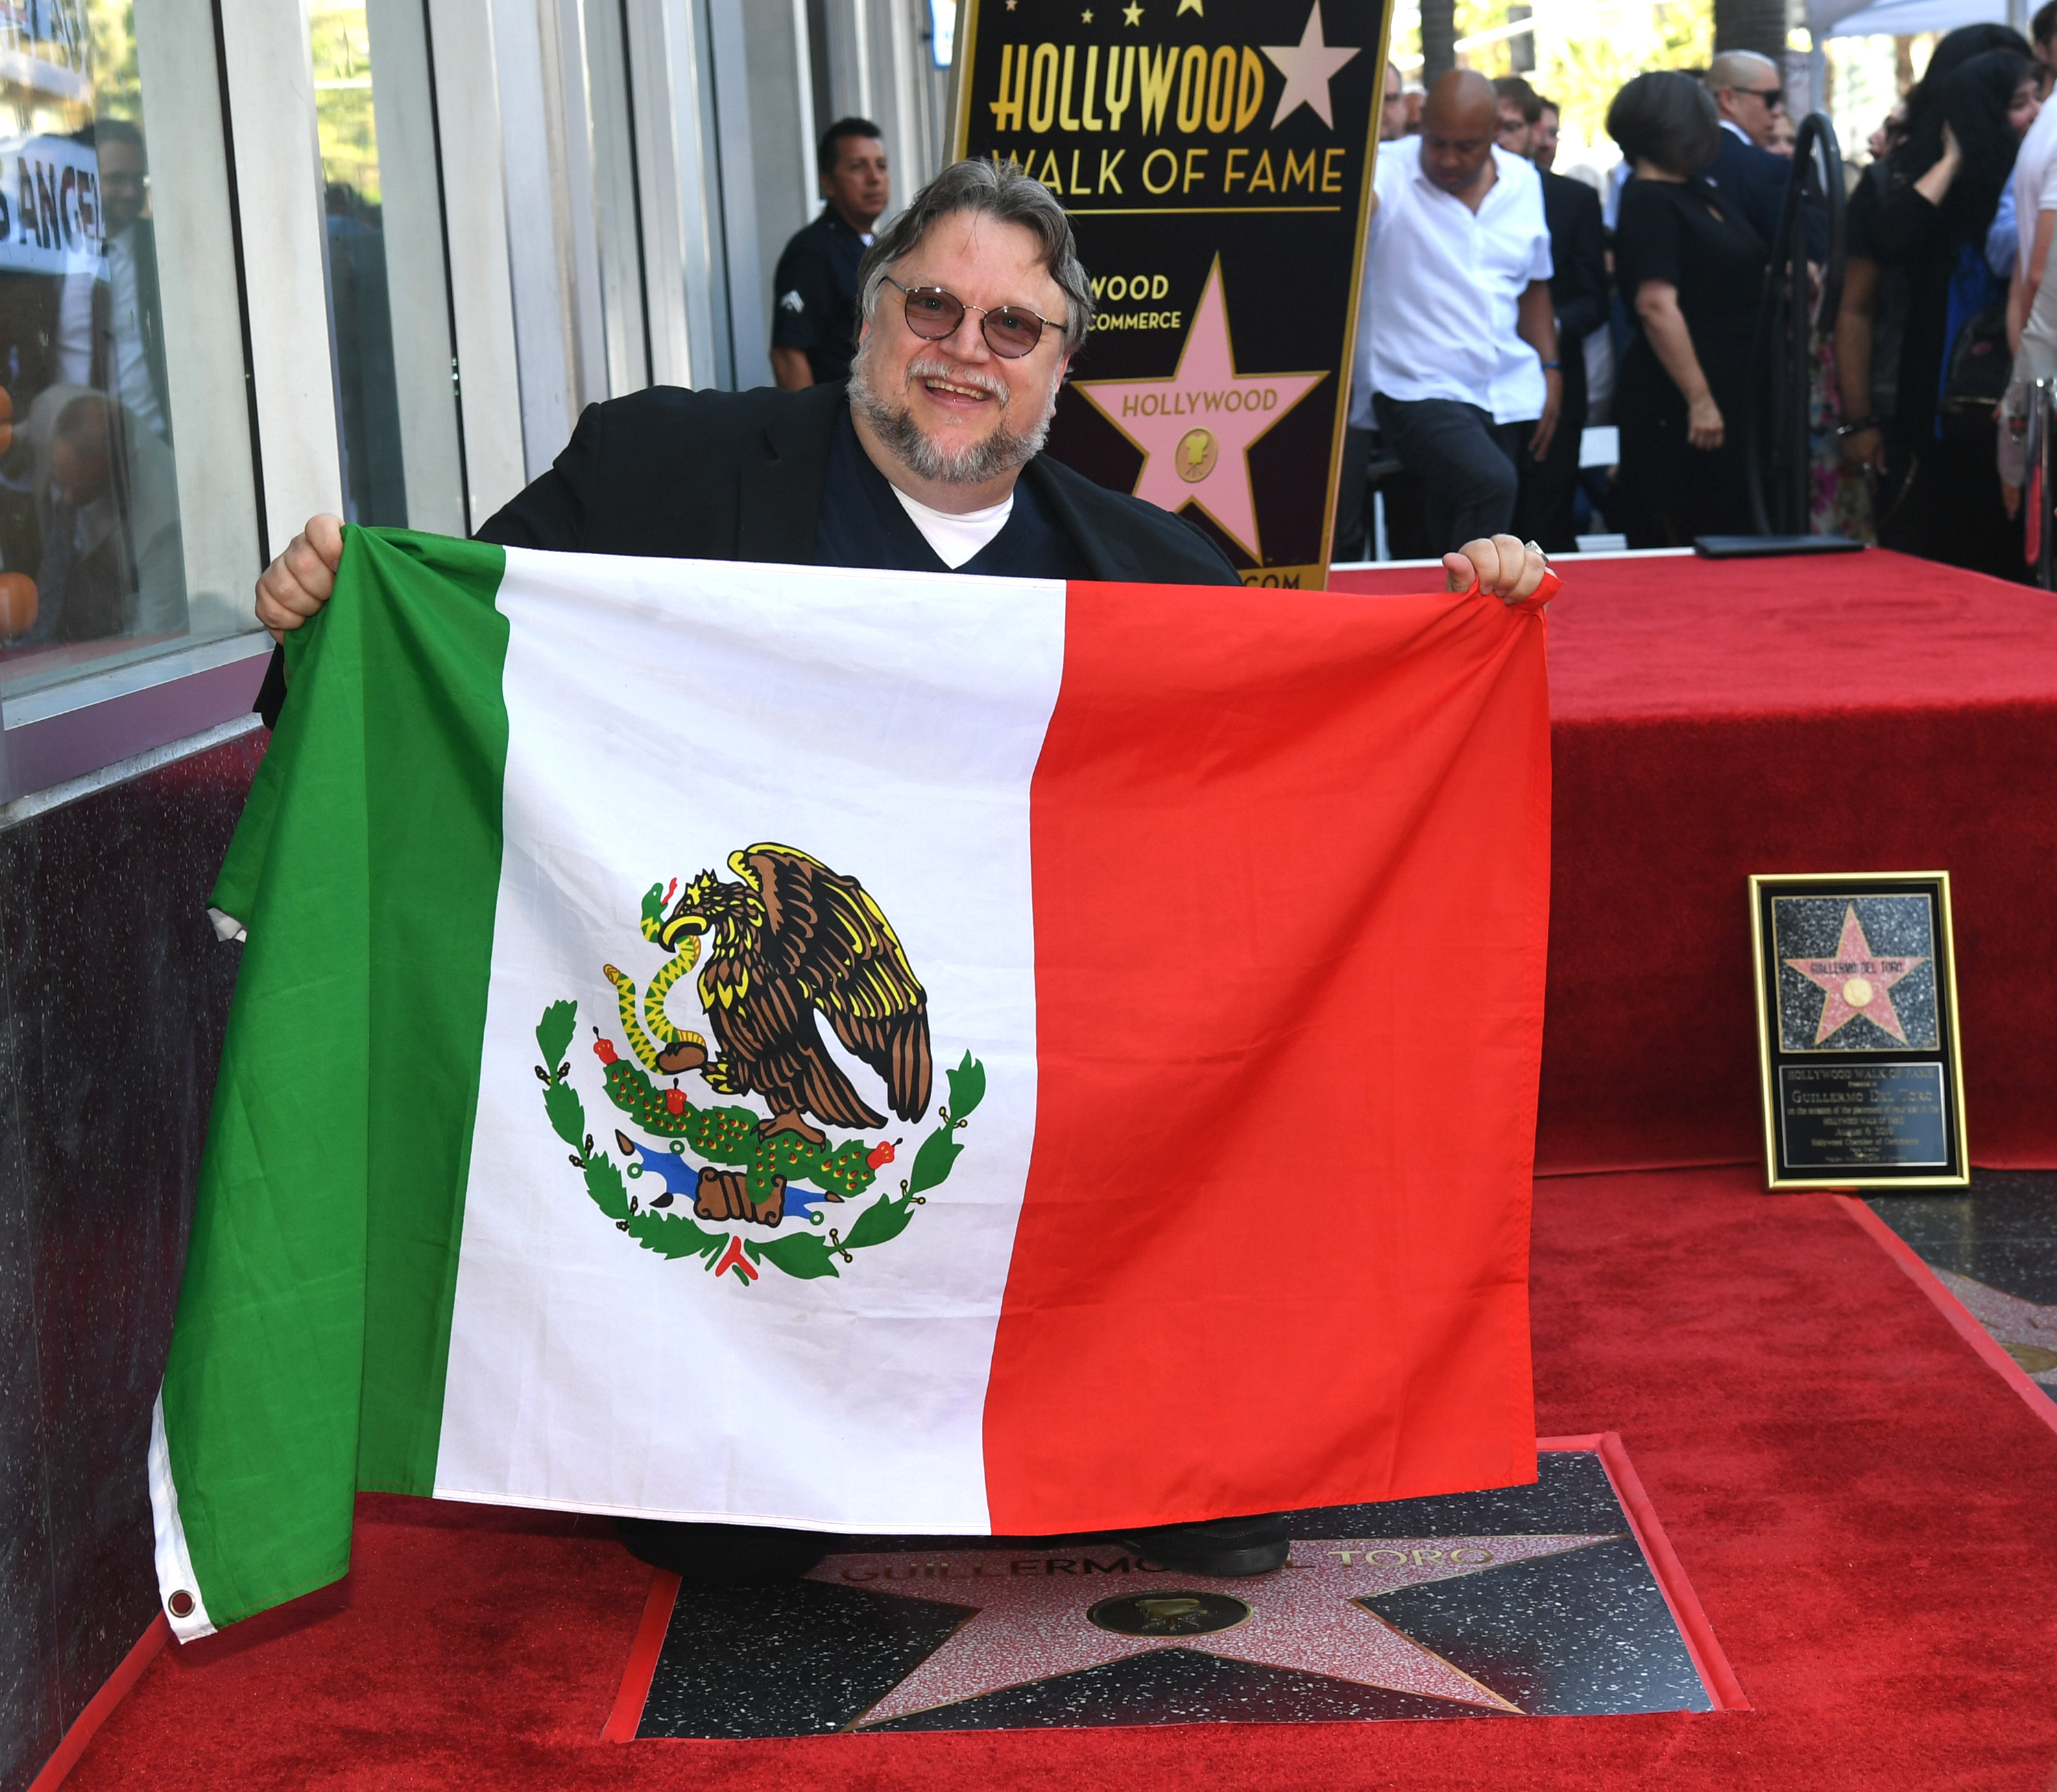 """Guillermo del Toro On Getting a Star on Hollywood Walk of Fame: """"I'm Mexican, and I Am an Immigrant"""""""